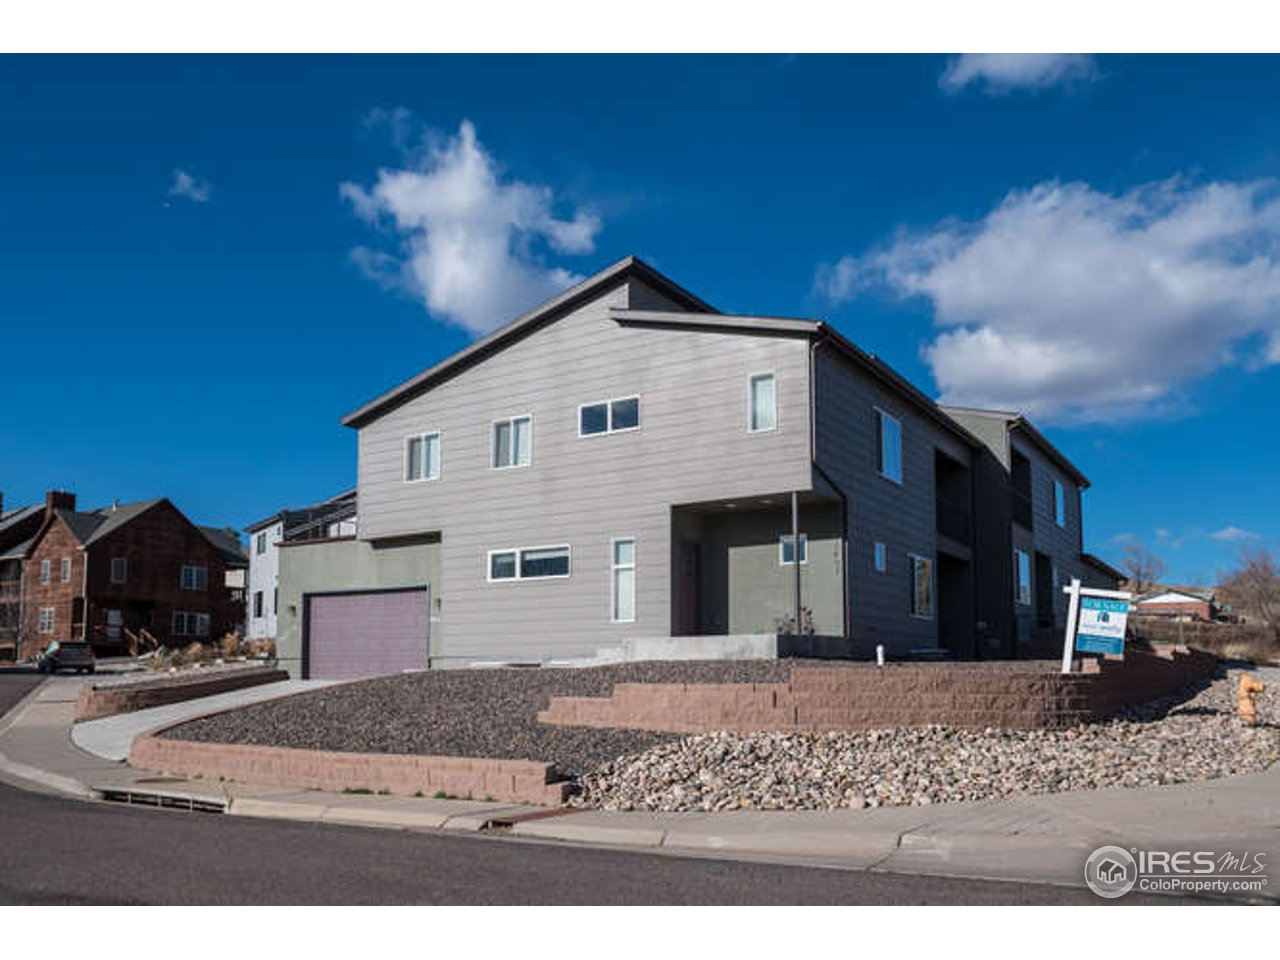 16407 W 13th Ln, Golden CO 80401